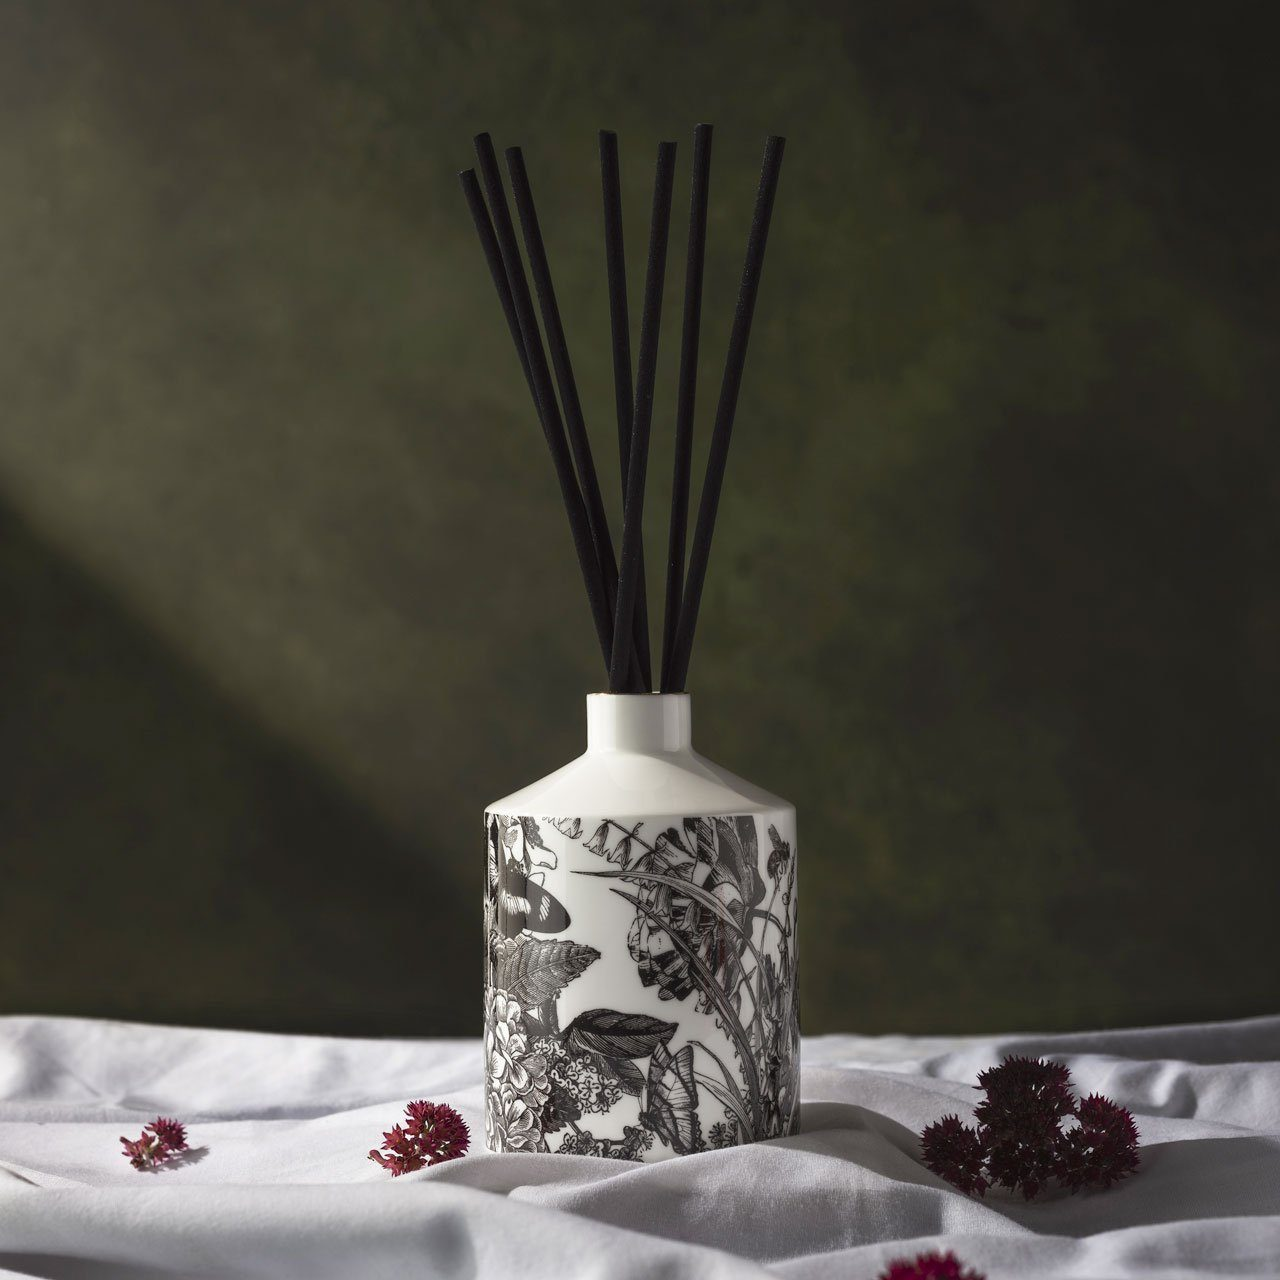 The Country Garden Ceramic Diffuser